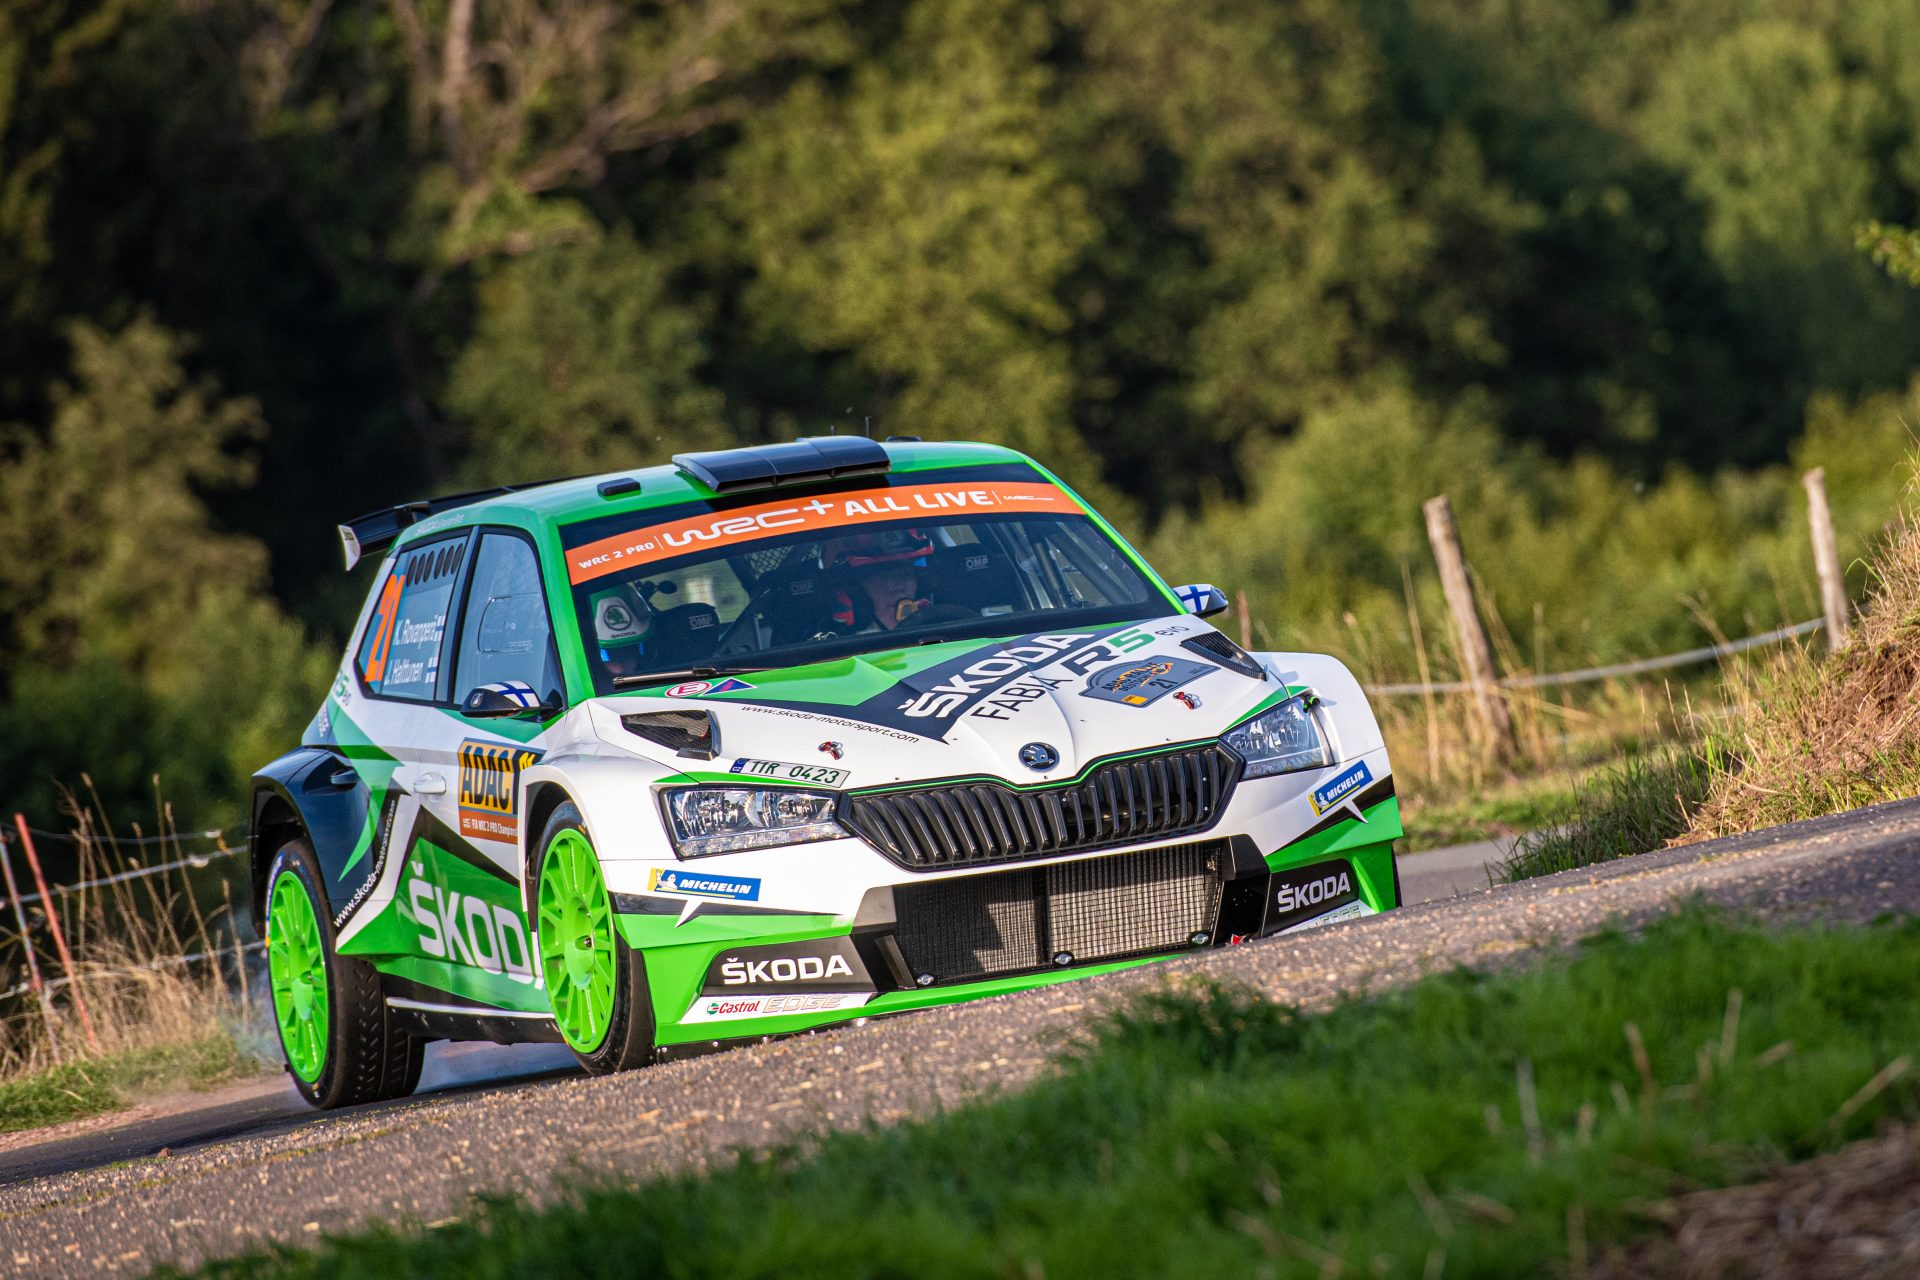 Rallye Deutschland 2019: Latest News and Results